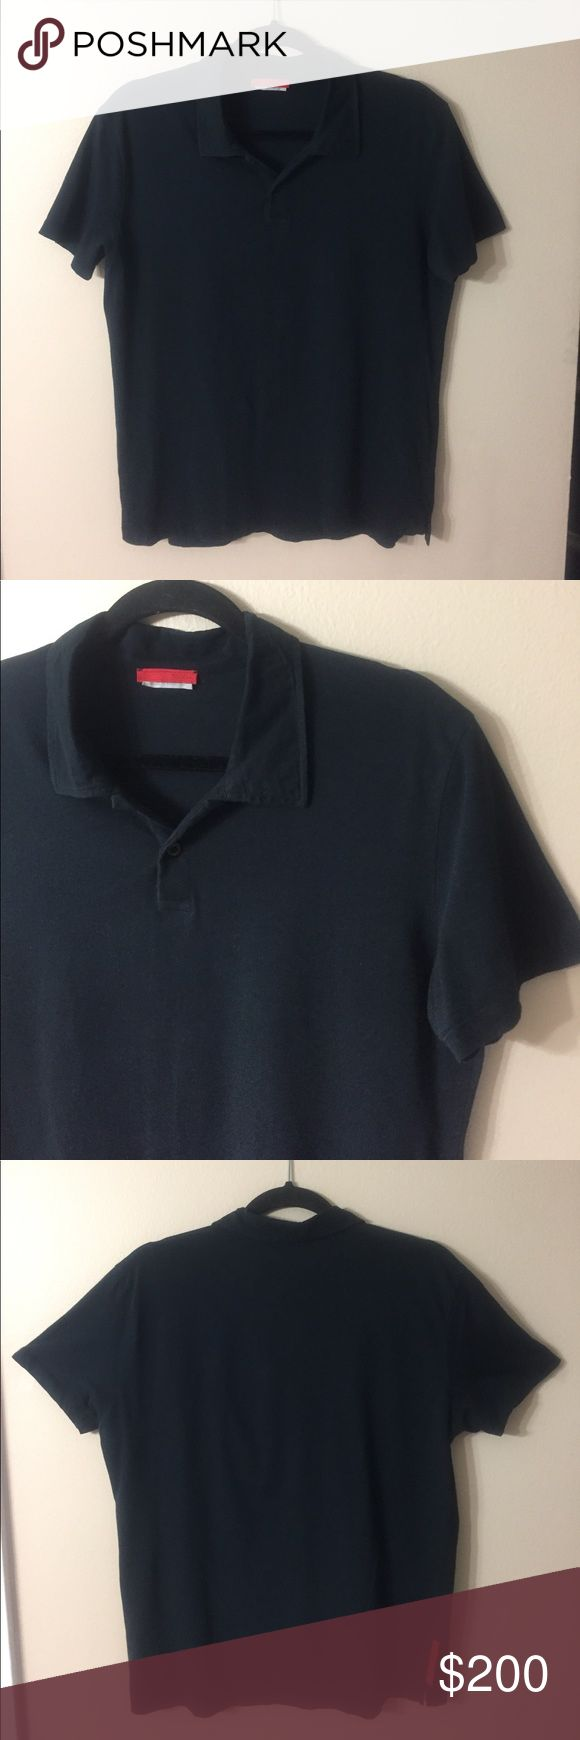 """PRADA Women's Polo Top EUC! Black polo collar shirt with 2 button placket. 100% Cotton. Laid flat chest measures 20.5"""", length from shoulder to hem is 24.5"""". Prada Tops"""